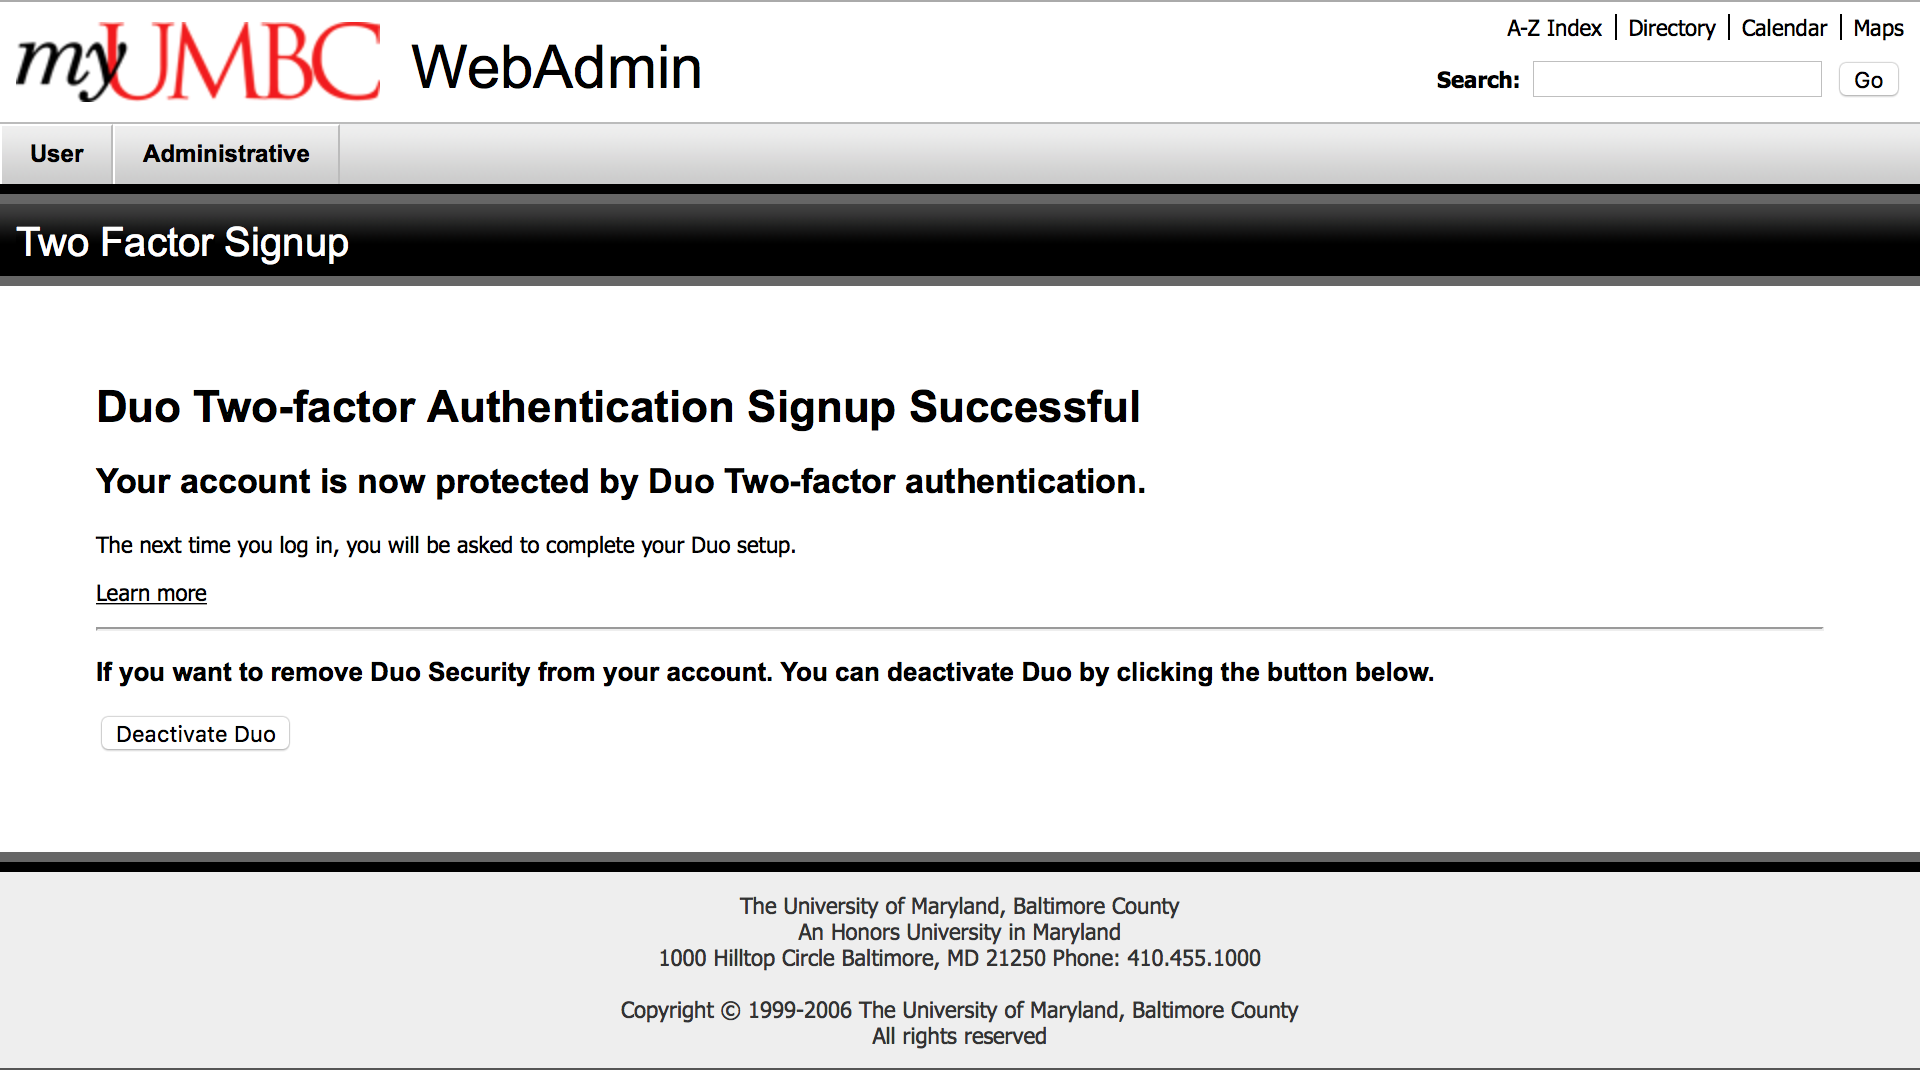 How do I opt in Duo two-factor authentication for my UMBC account